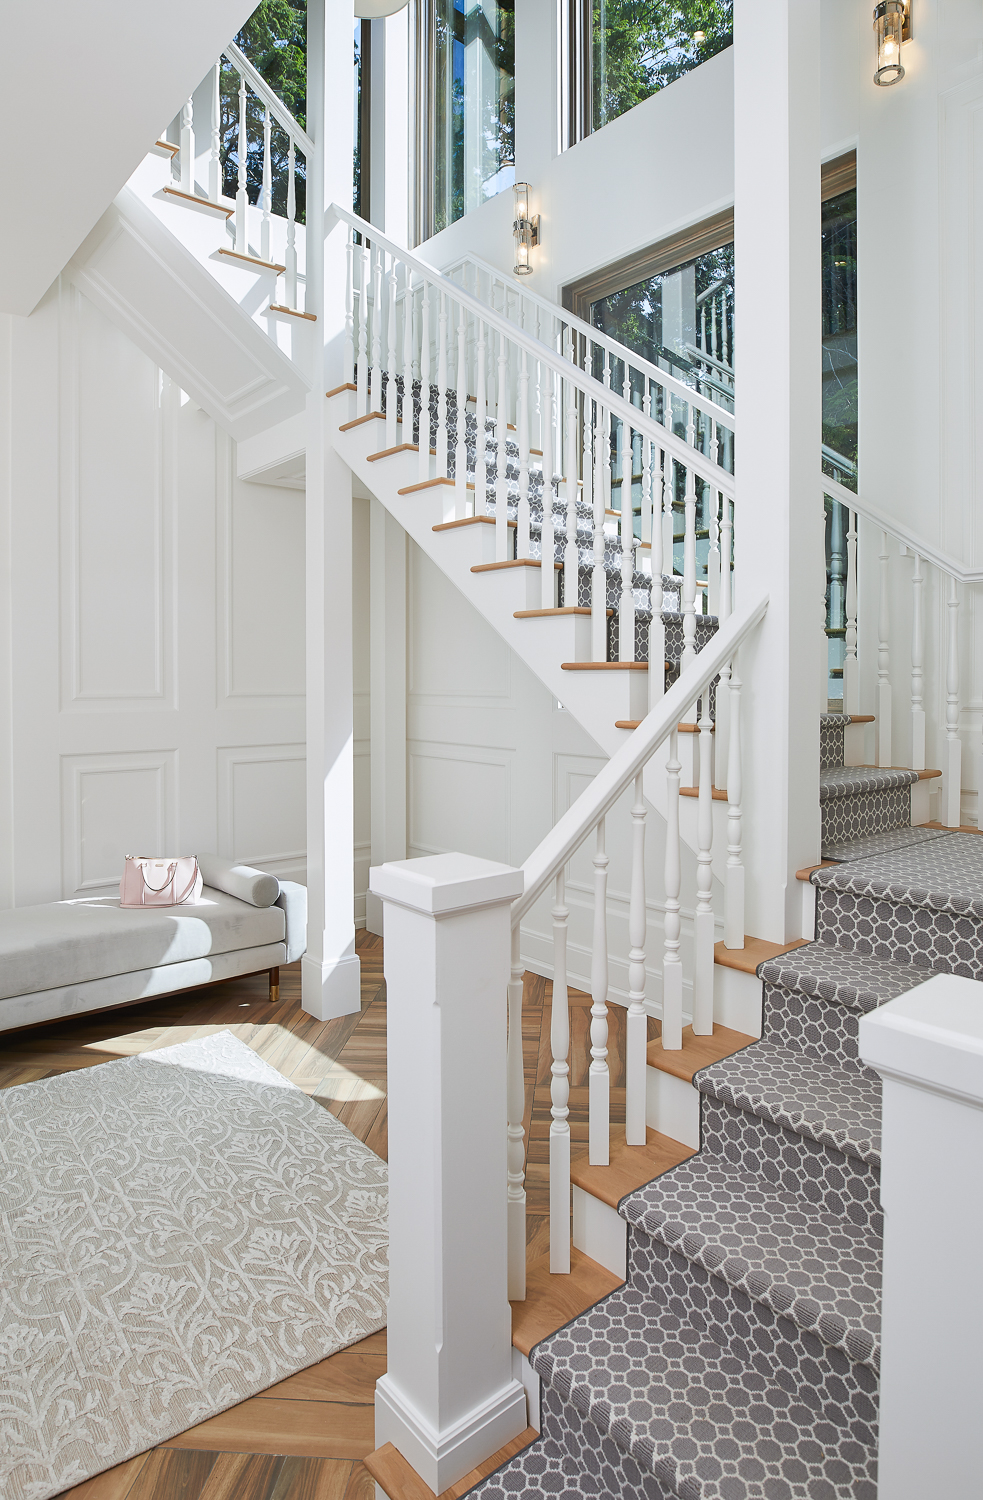 Lower level view of the main staircase